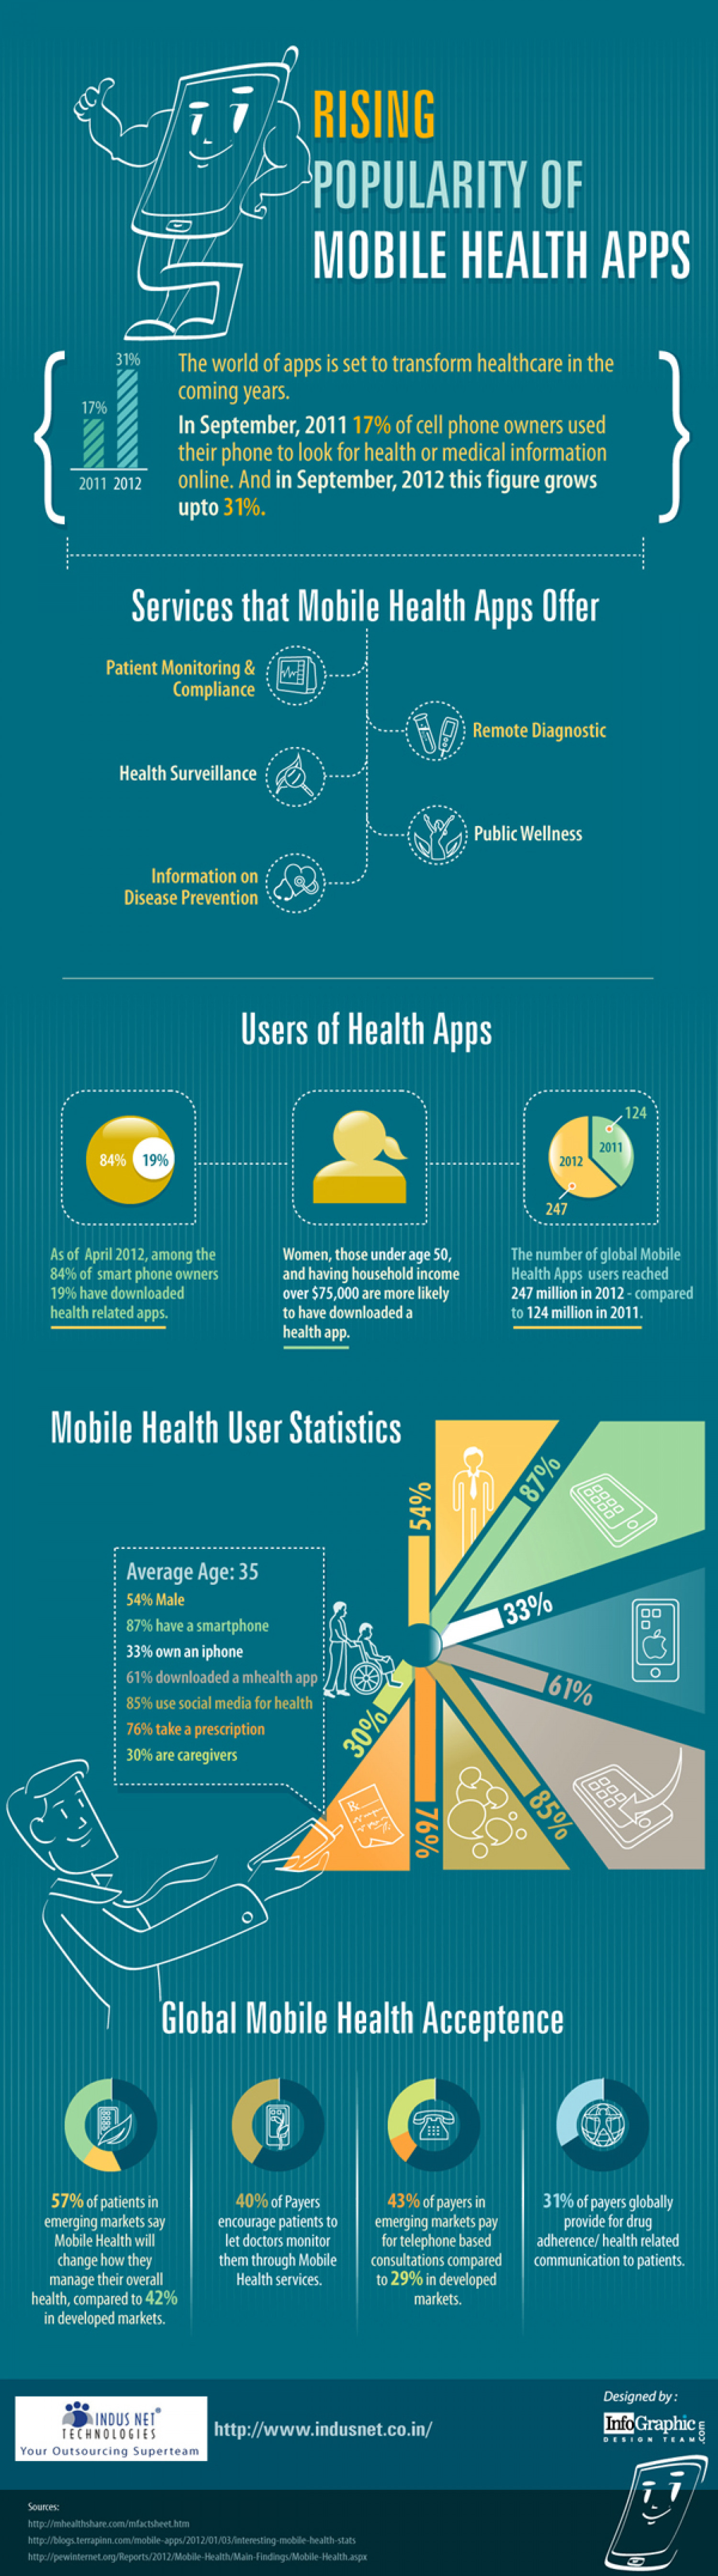 Rising Popularity of Mobile Health Apps Infographic